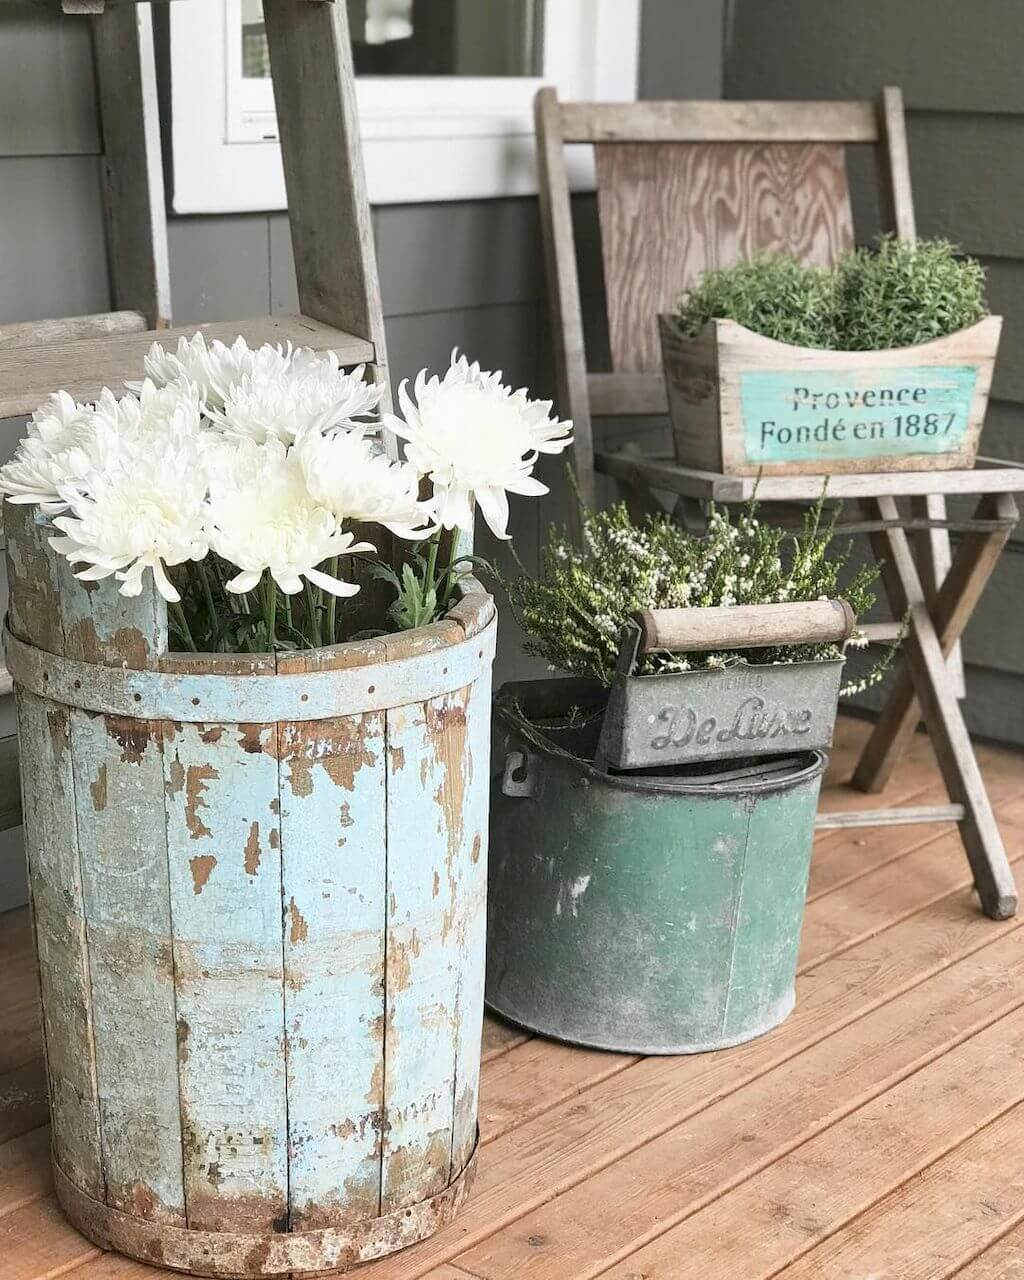 17 Best Farmhouse Outdoor Decor Ideas and Designs for 2020 on Lawn Decorating Ideas  id=55210